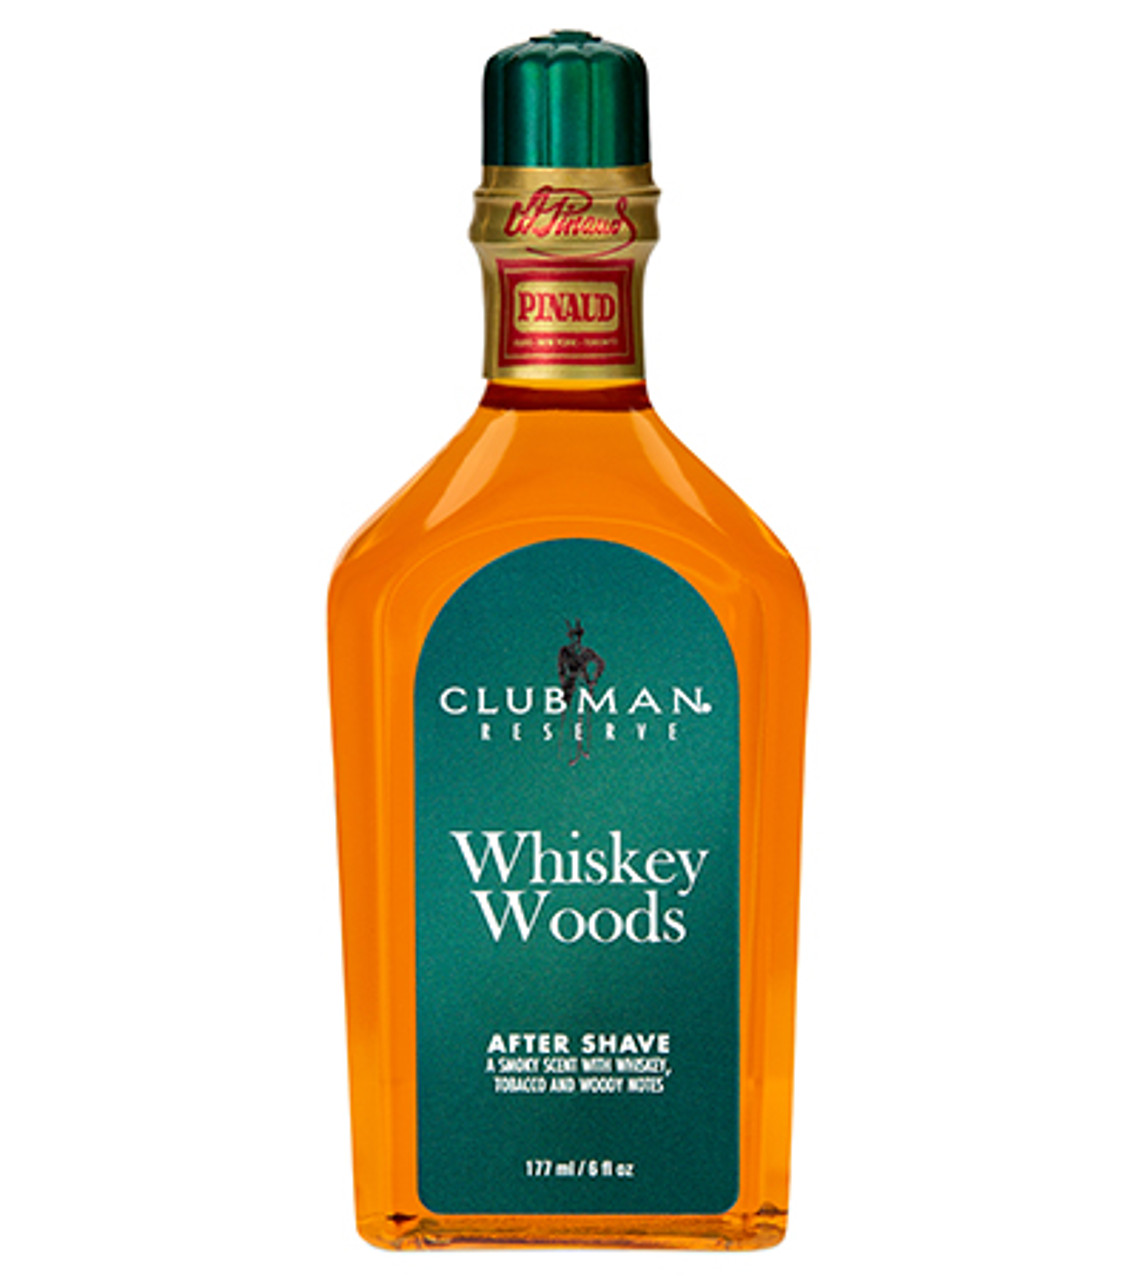 Clubman Whiskey Woods Aftershave 6oz.